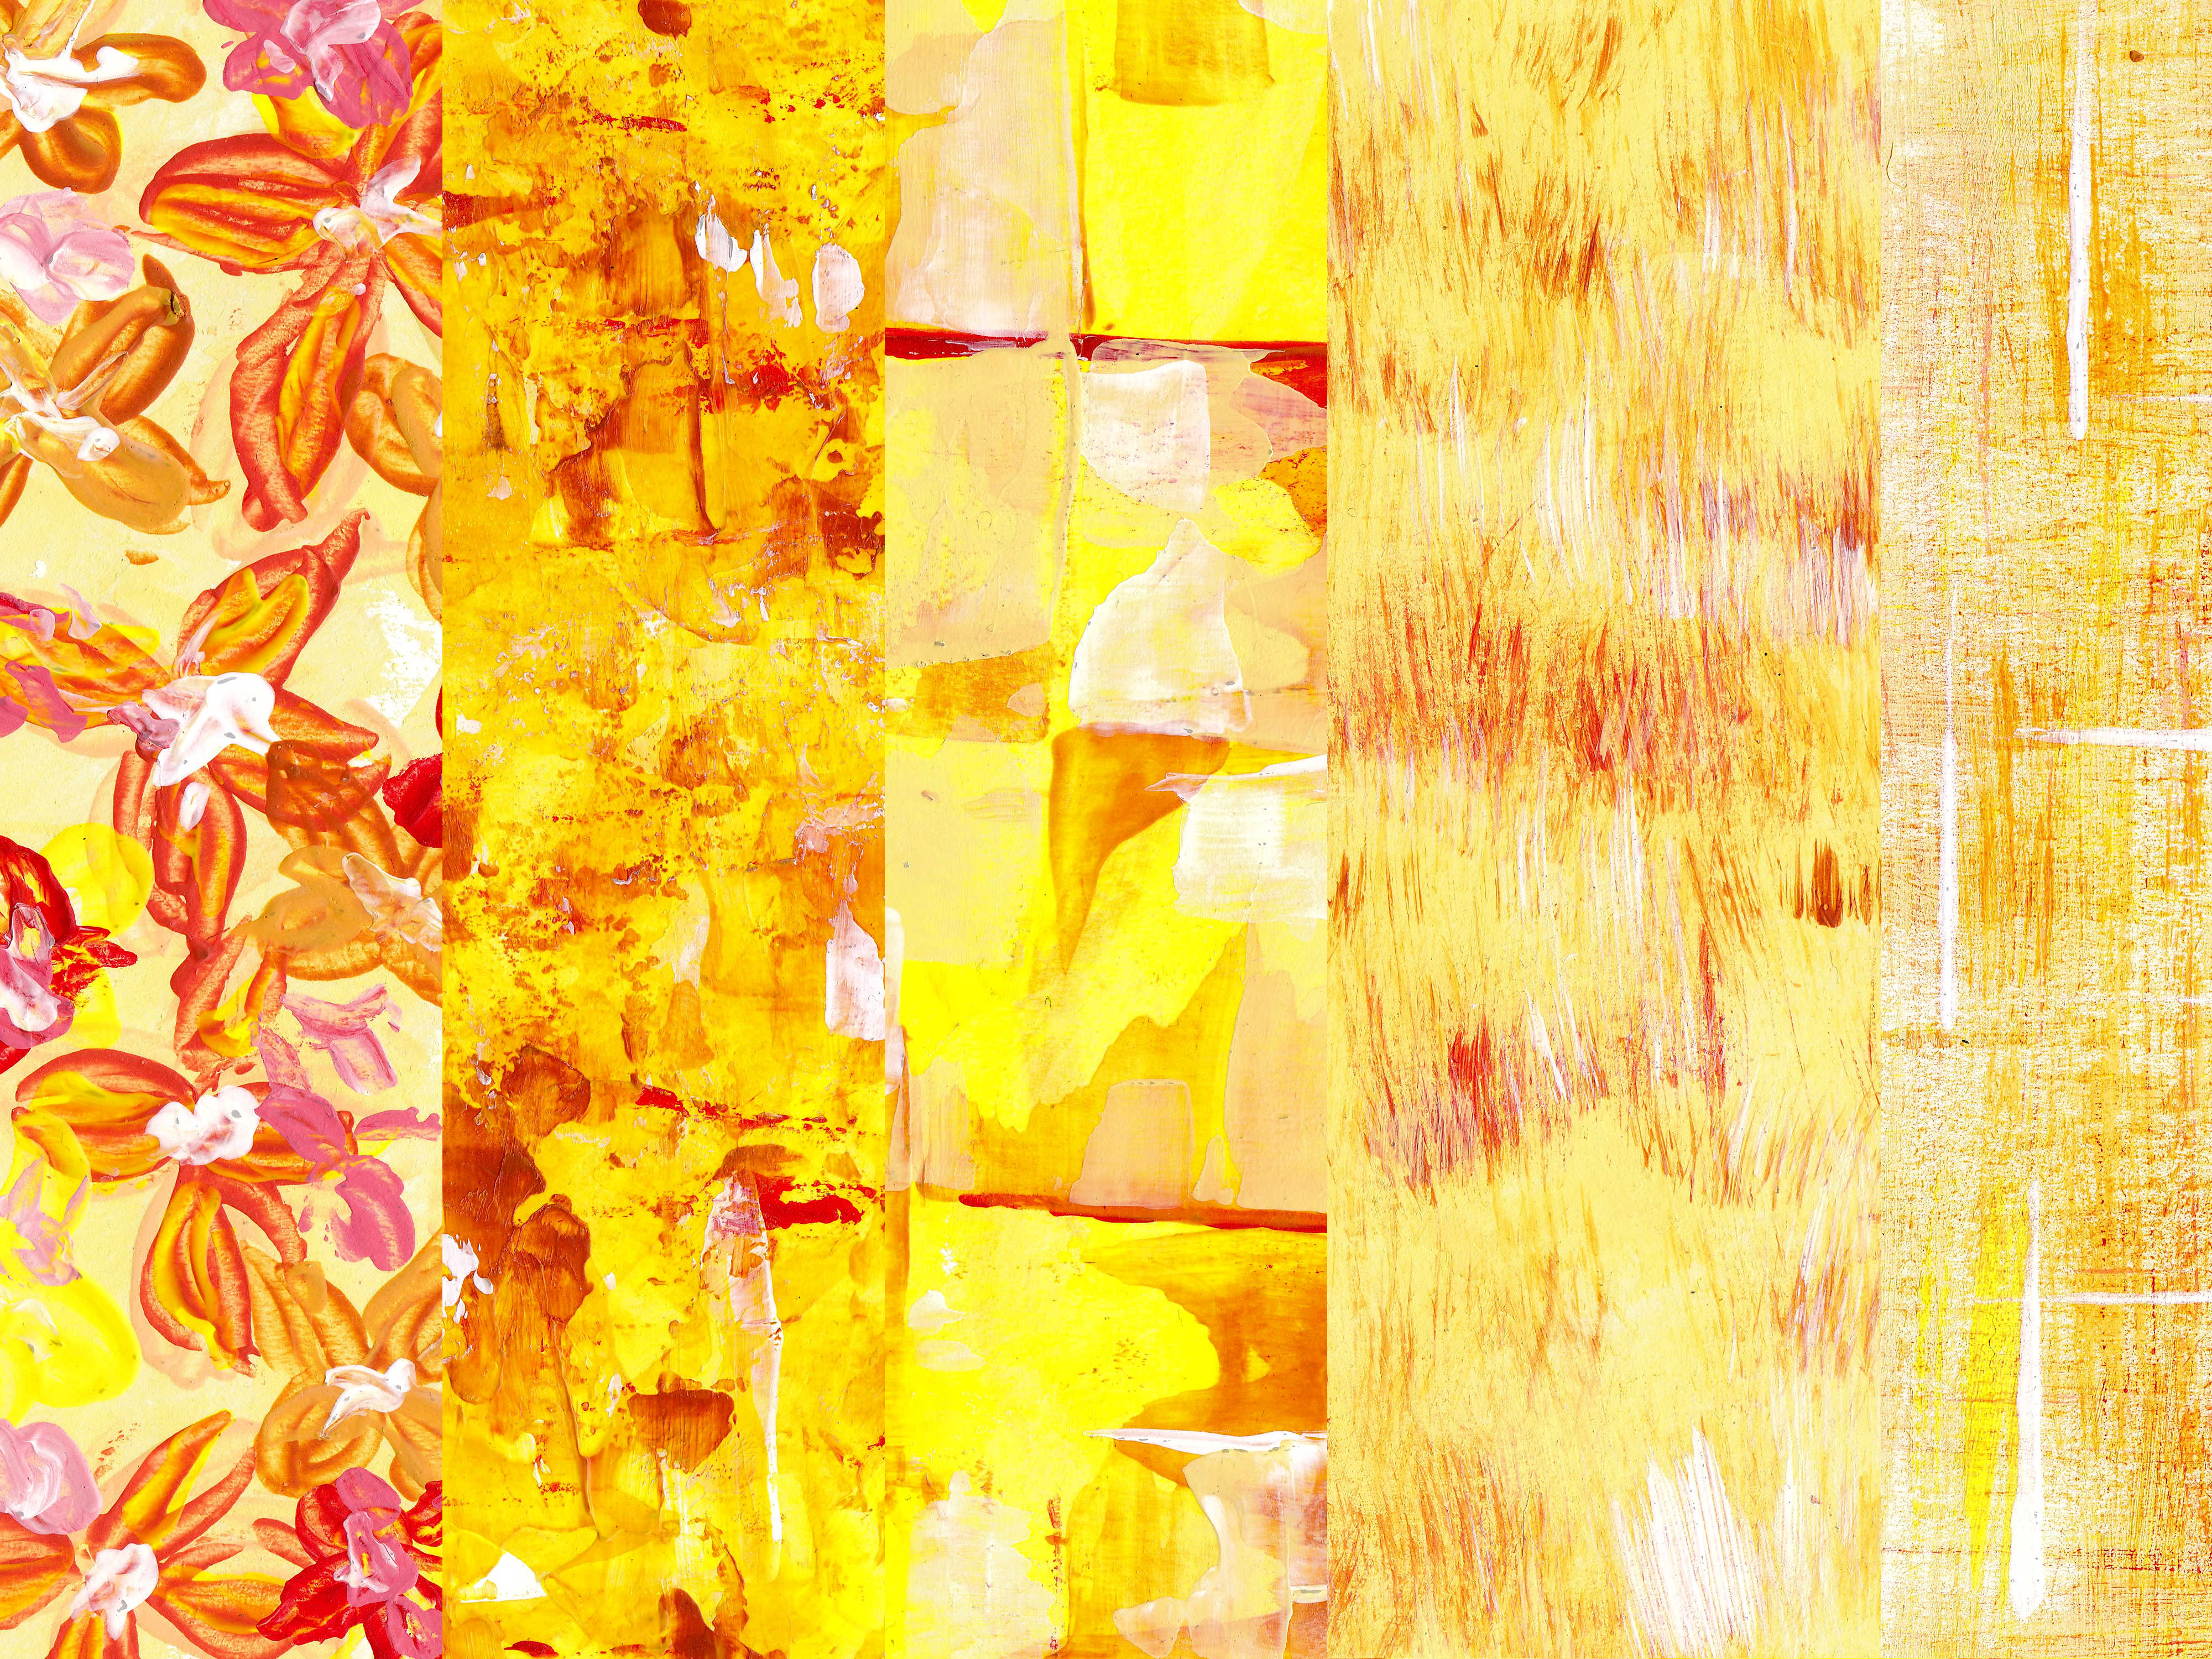 yellow-abstract-painting-backgrounds-cover.jpg